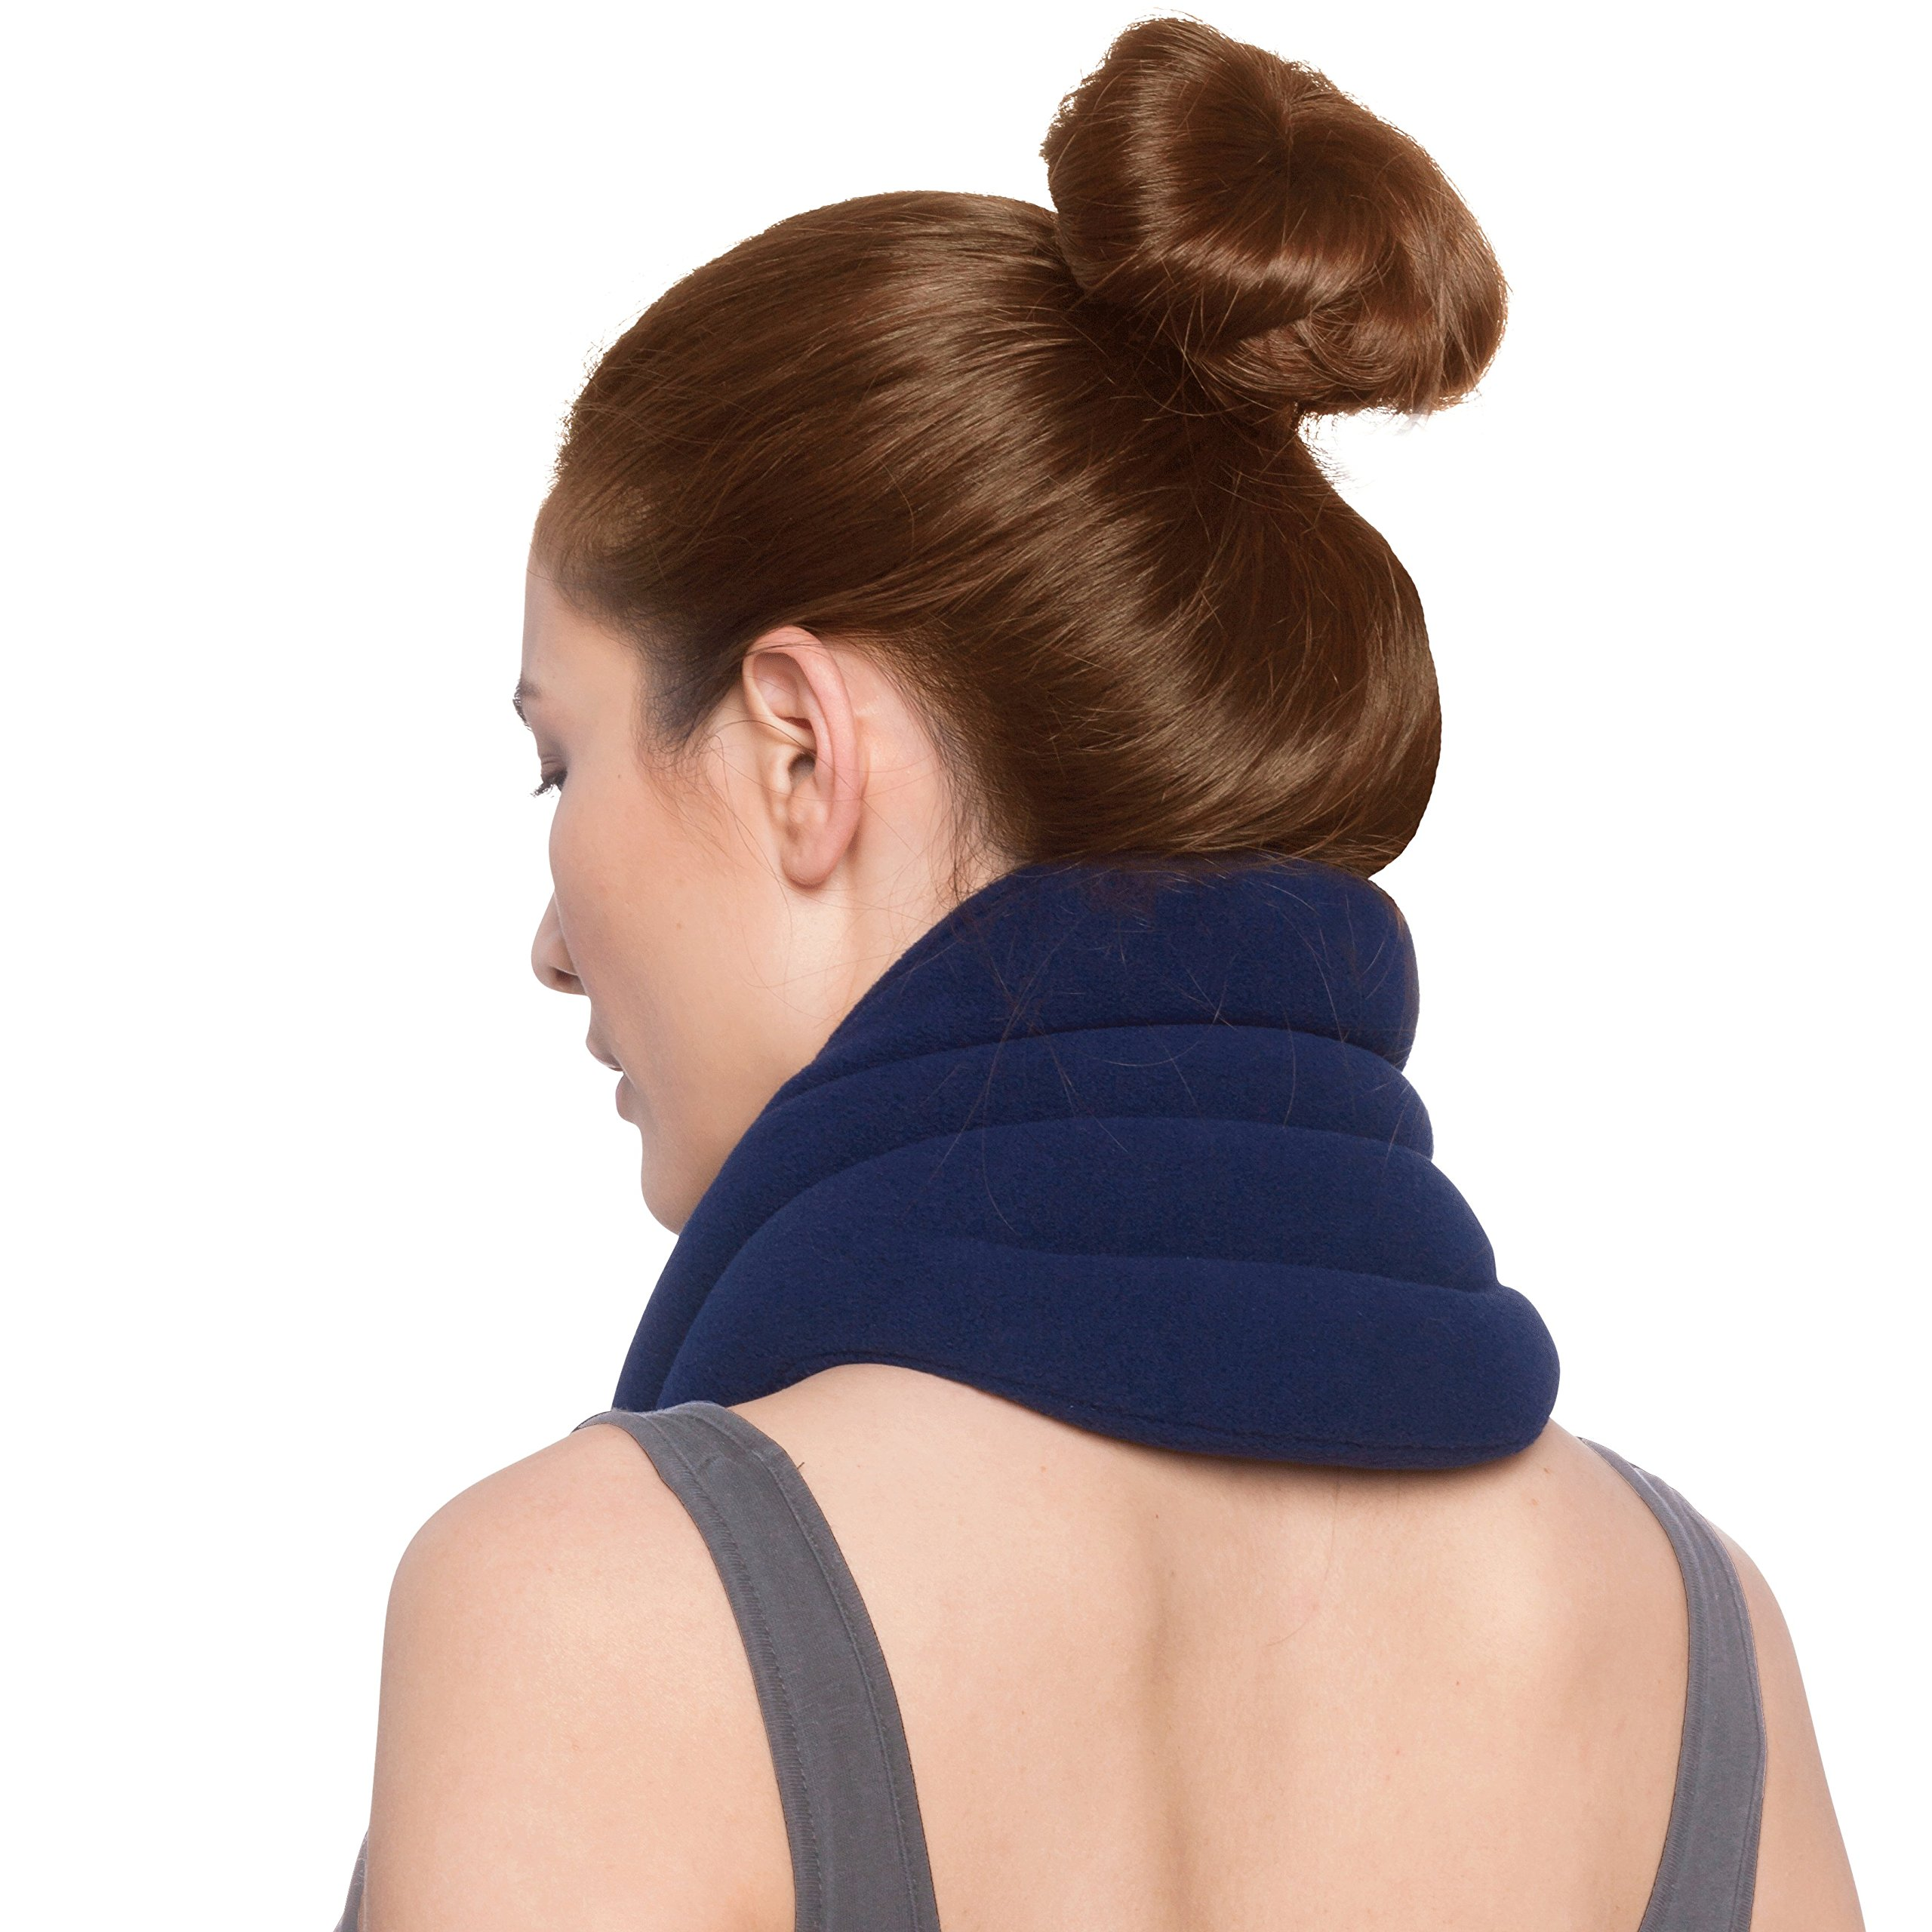 Sunny Bay Hands-Free Neck Heating Wrap: Microwavable Thermal Hot Pack, Heat Therapy Neck Brace for Sore Neck & Shoulder Muscle Pain Relief - Personal, Reusable, Blue by Sunny Bay